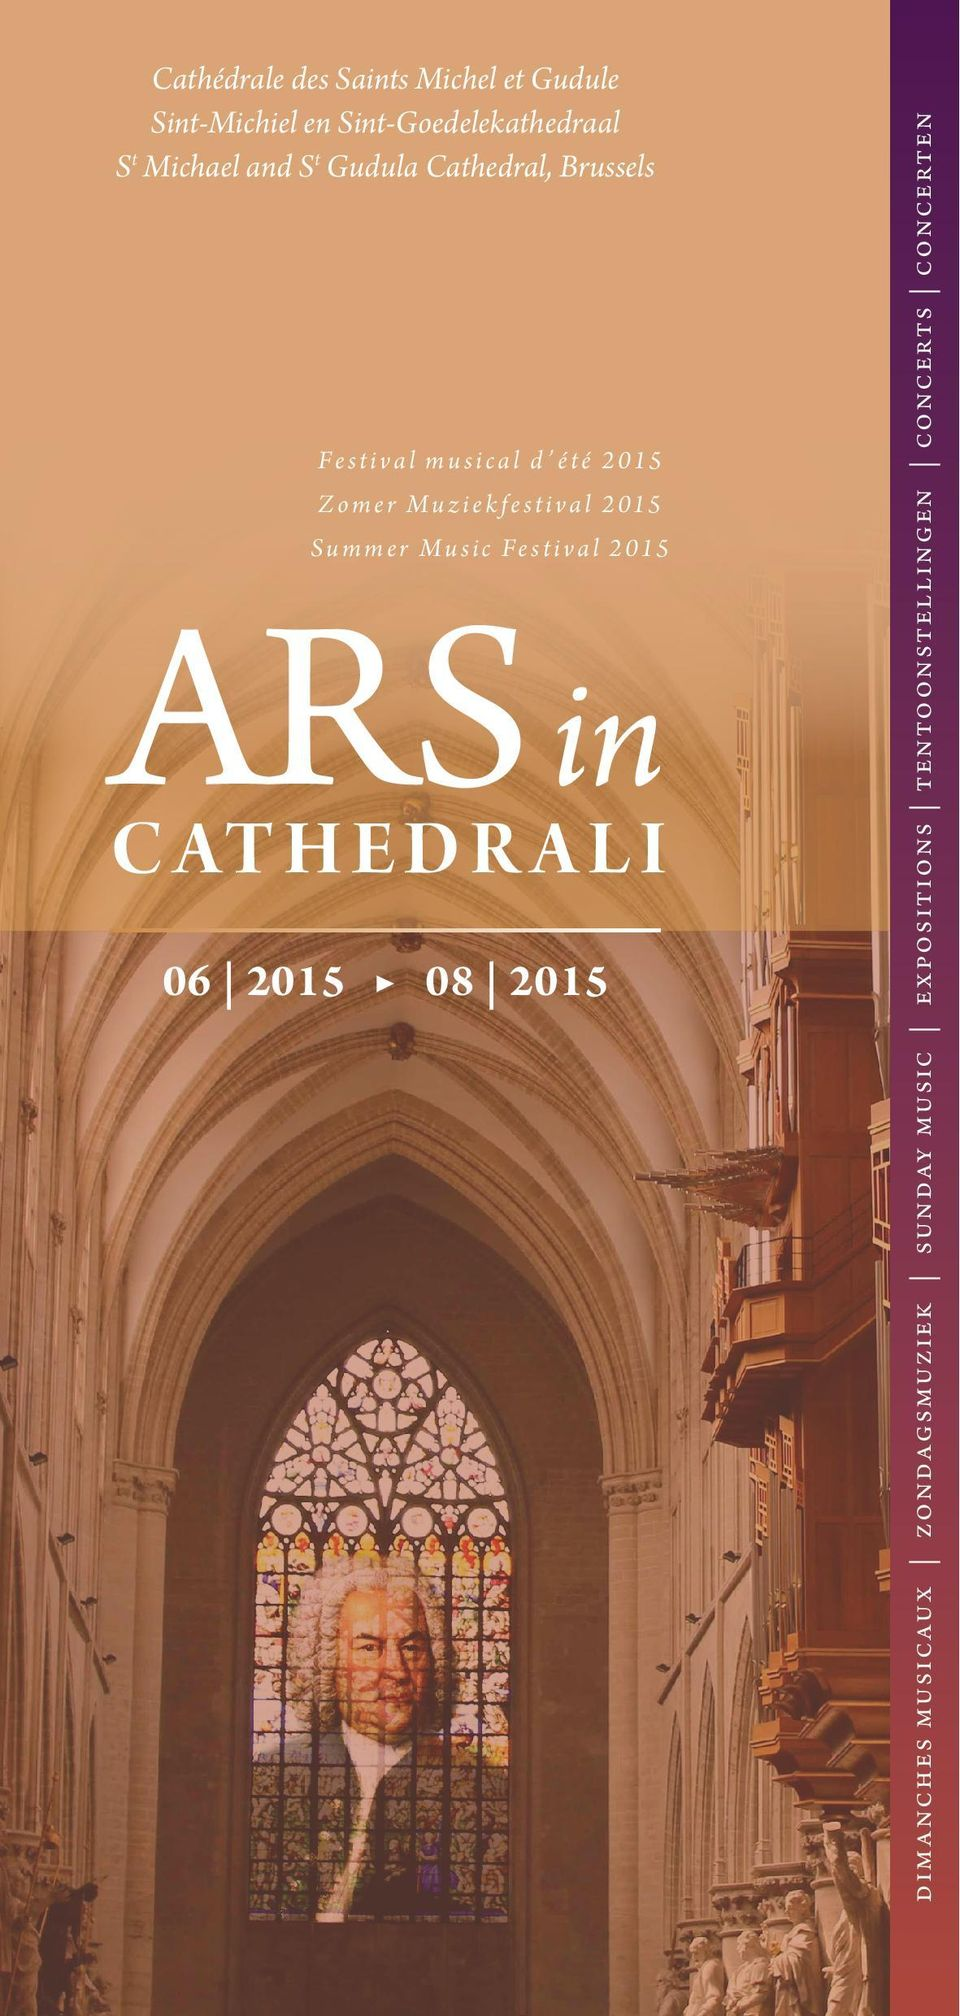 Muziekfestival 2015 Summer Music Festival 2015 ARS in CATHEDRALI 06 2015 08 2015